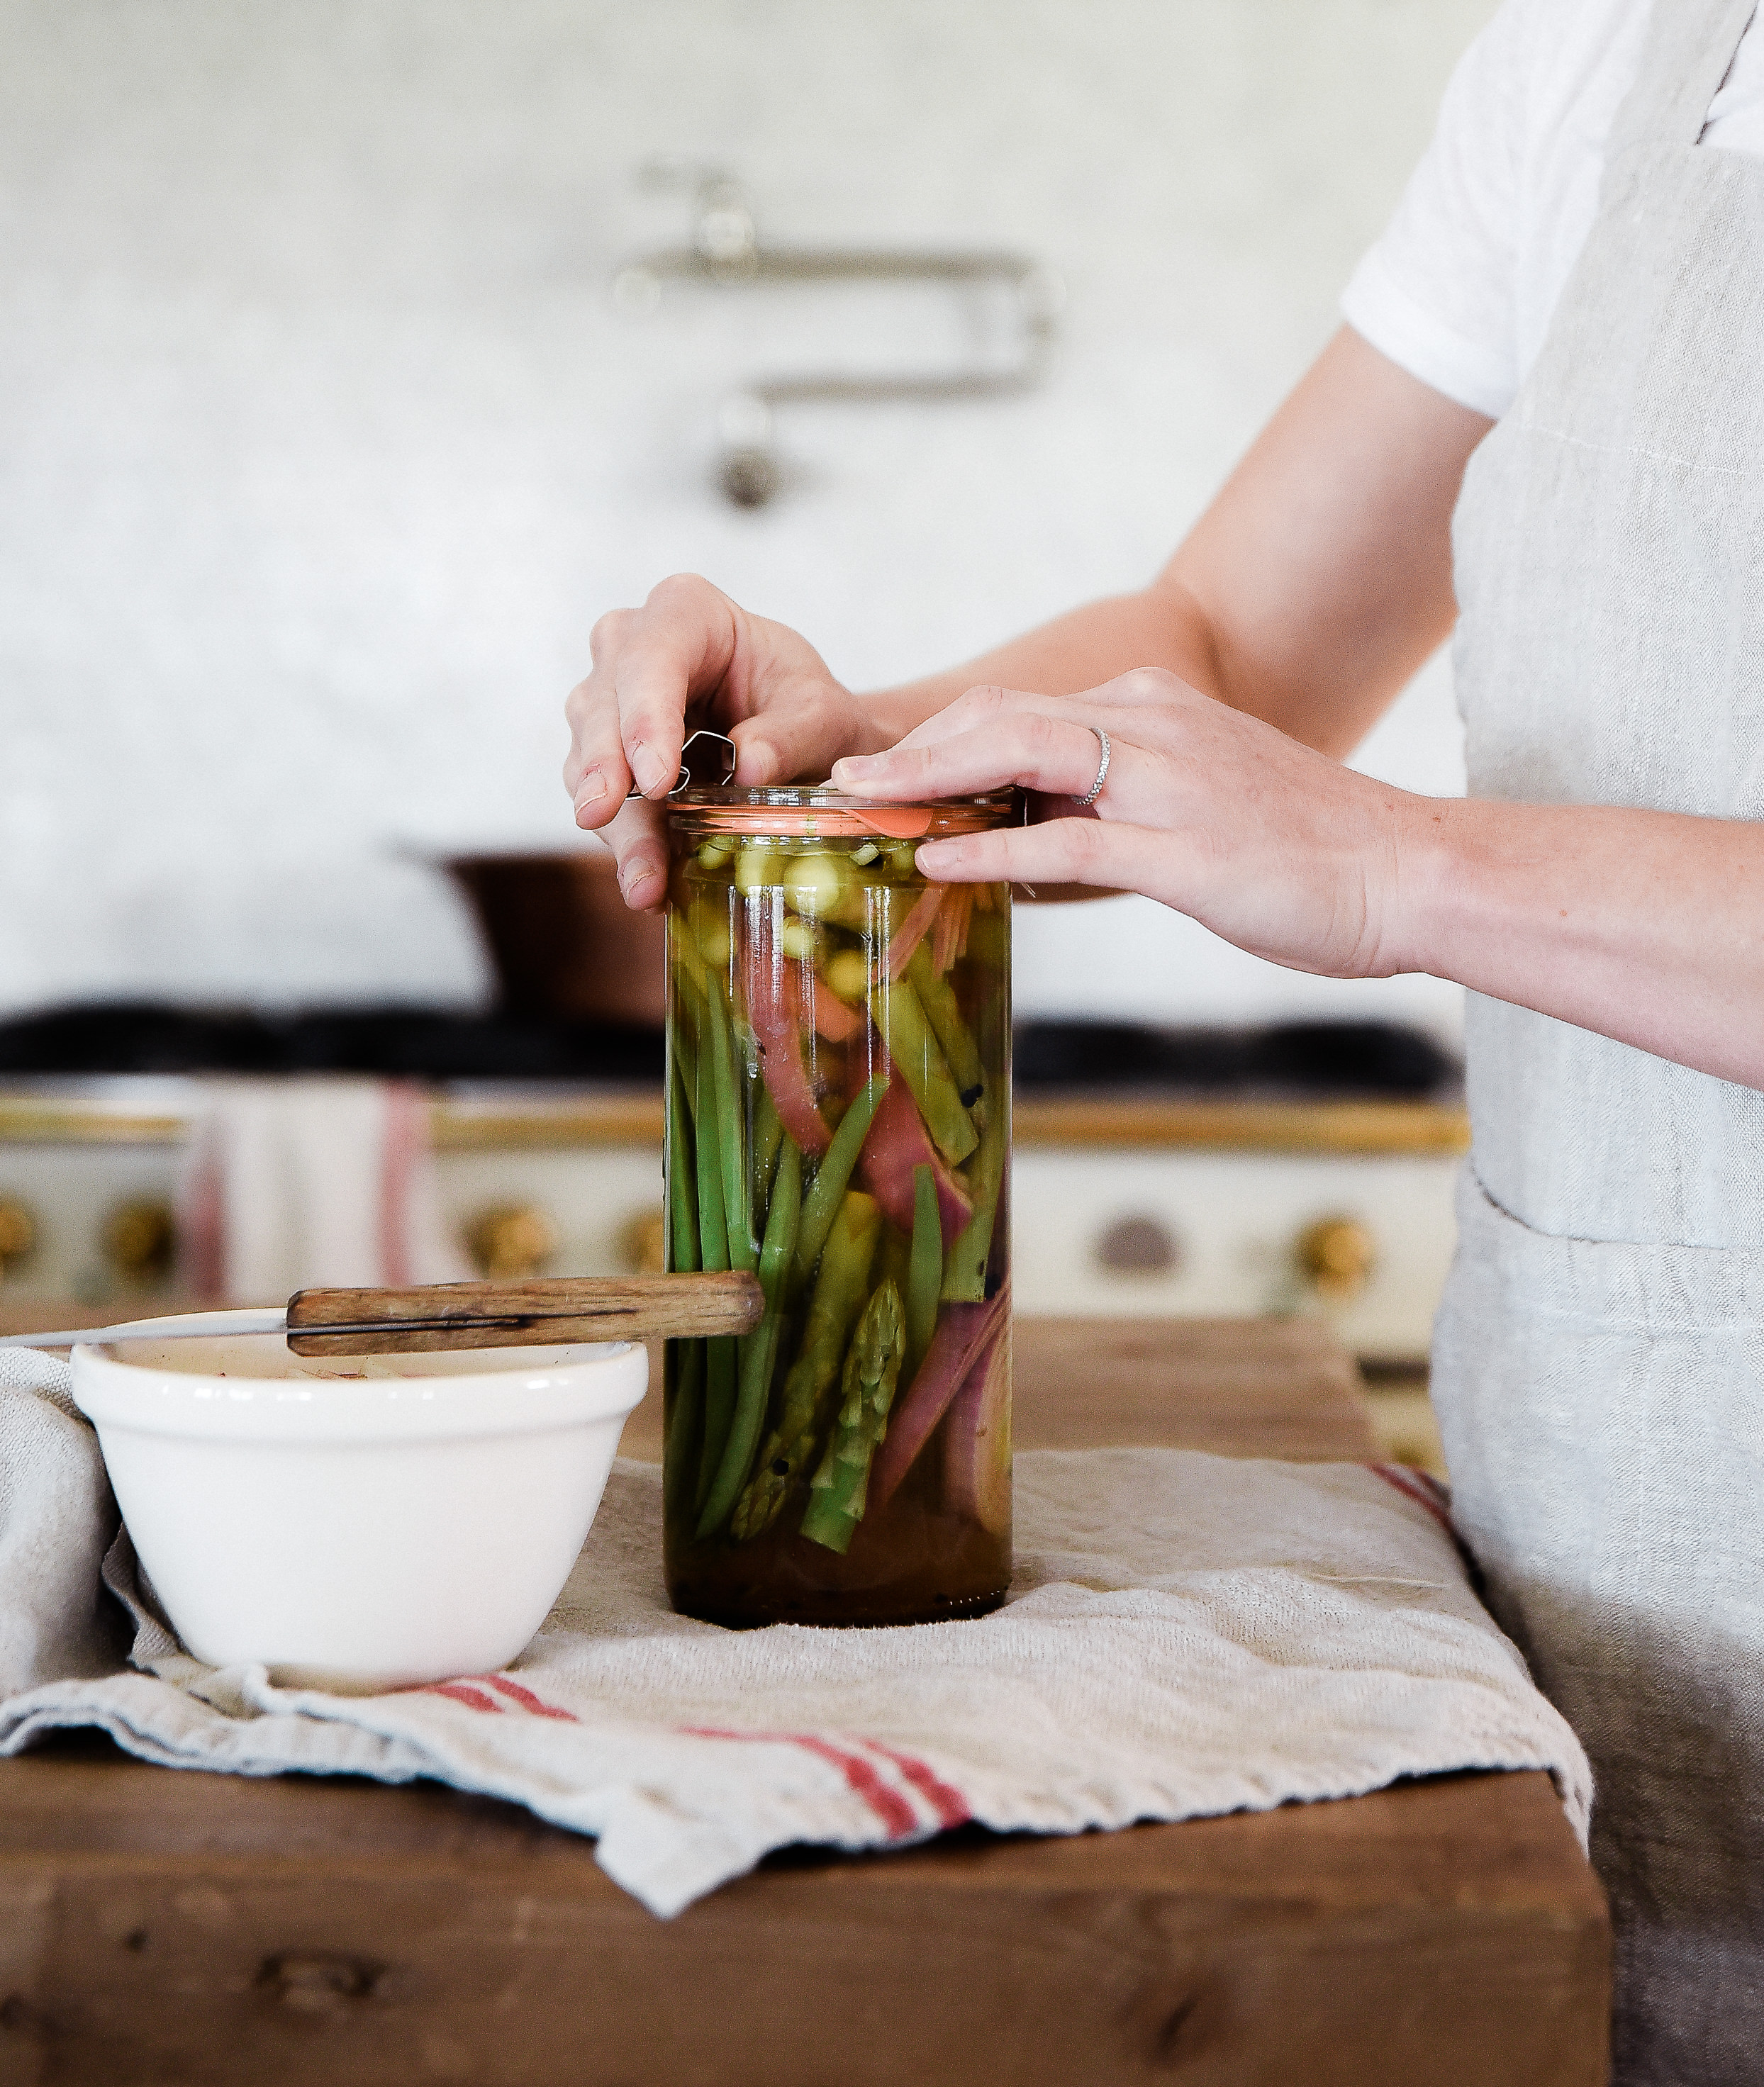 Learn how to make pickled vegetables! How to quick pickle vegetables. #pickling #preserving #pickledvegetables